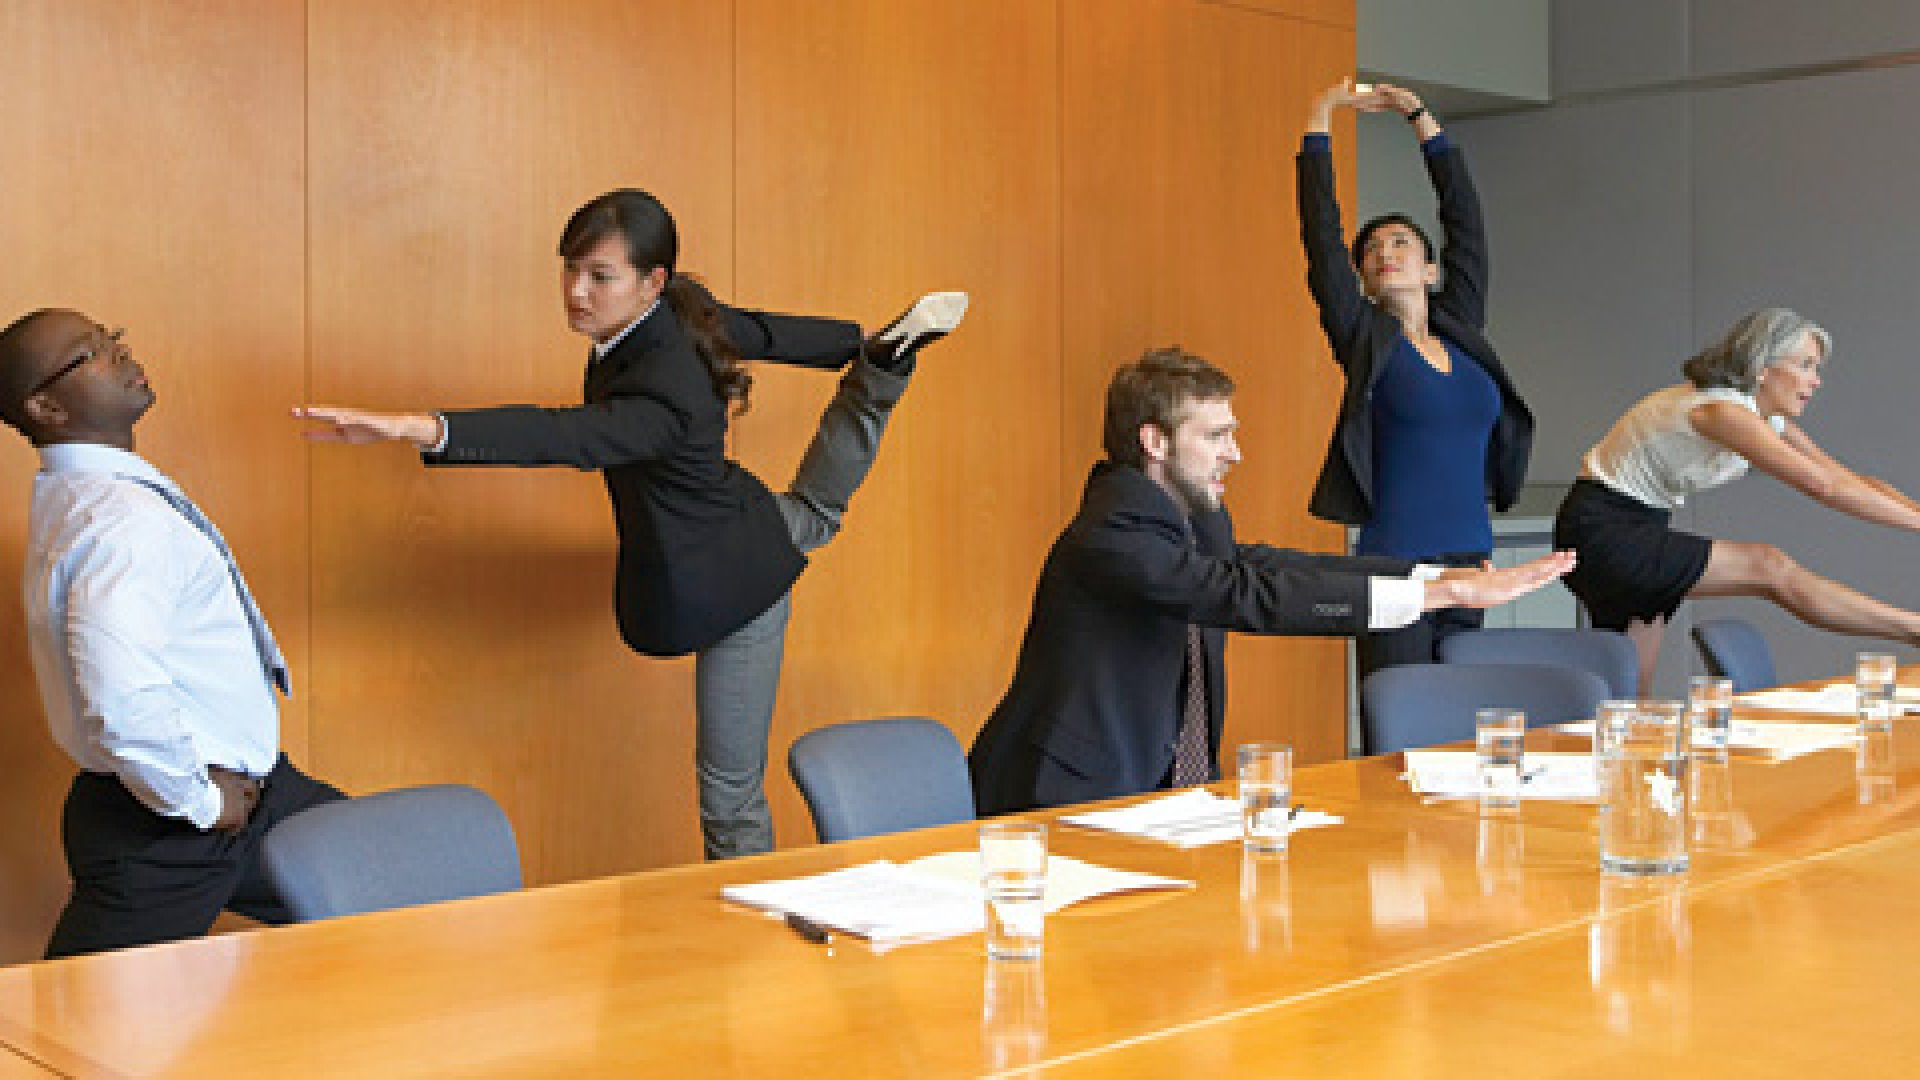 <b>Deskercise:</b> Get out of your seat. You just might improve your health--and increase your productivity.</b>